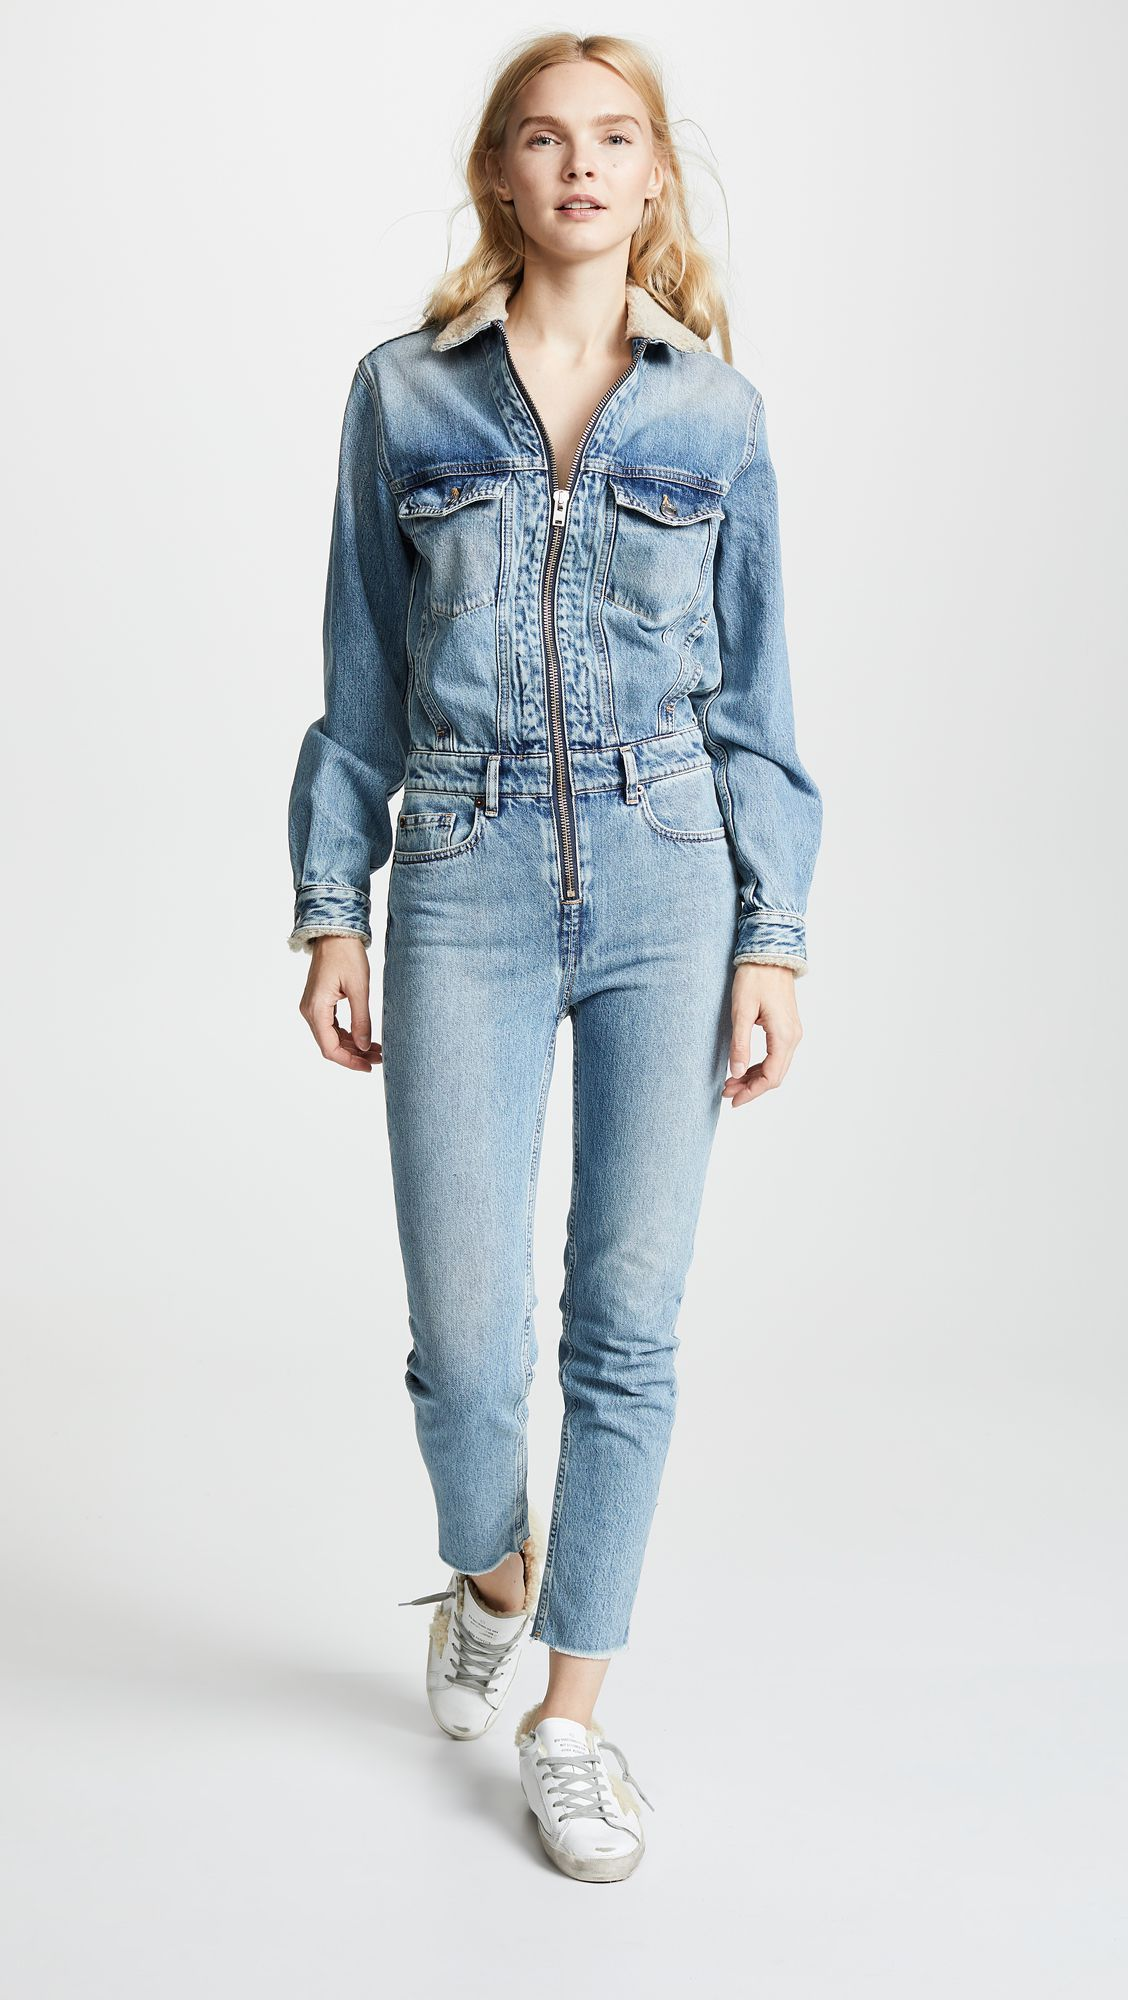 47e2fe50a20 Kylie Jenner s IRO Denim Jumpsuit Sent Me Into a Frantic Search for ...